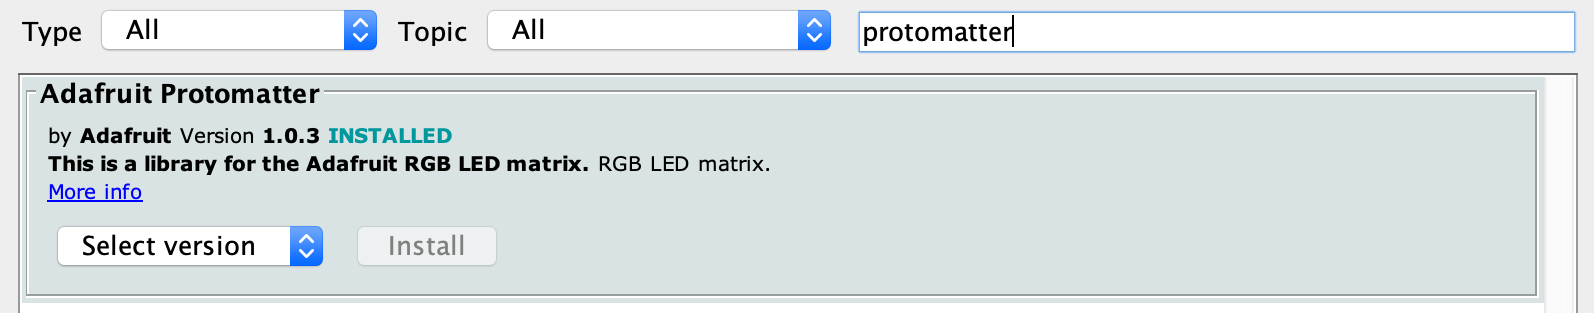 led_matrices_protomatter.png